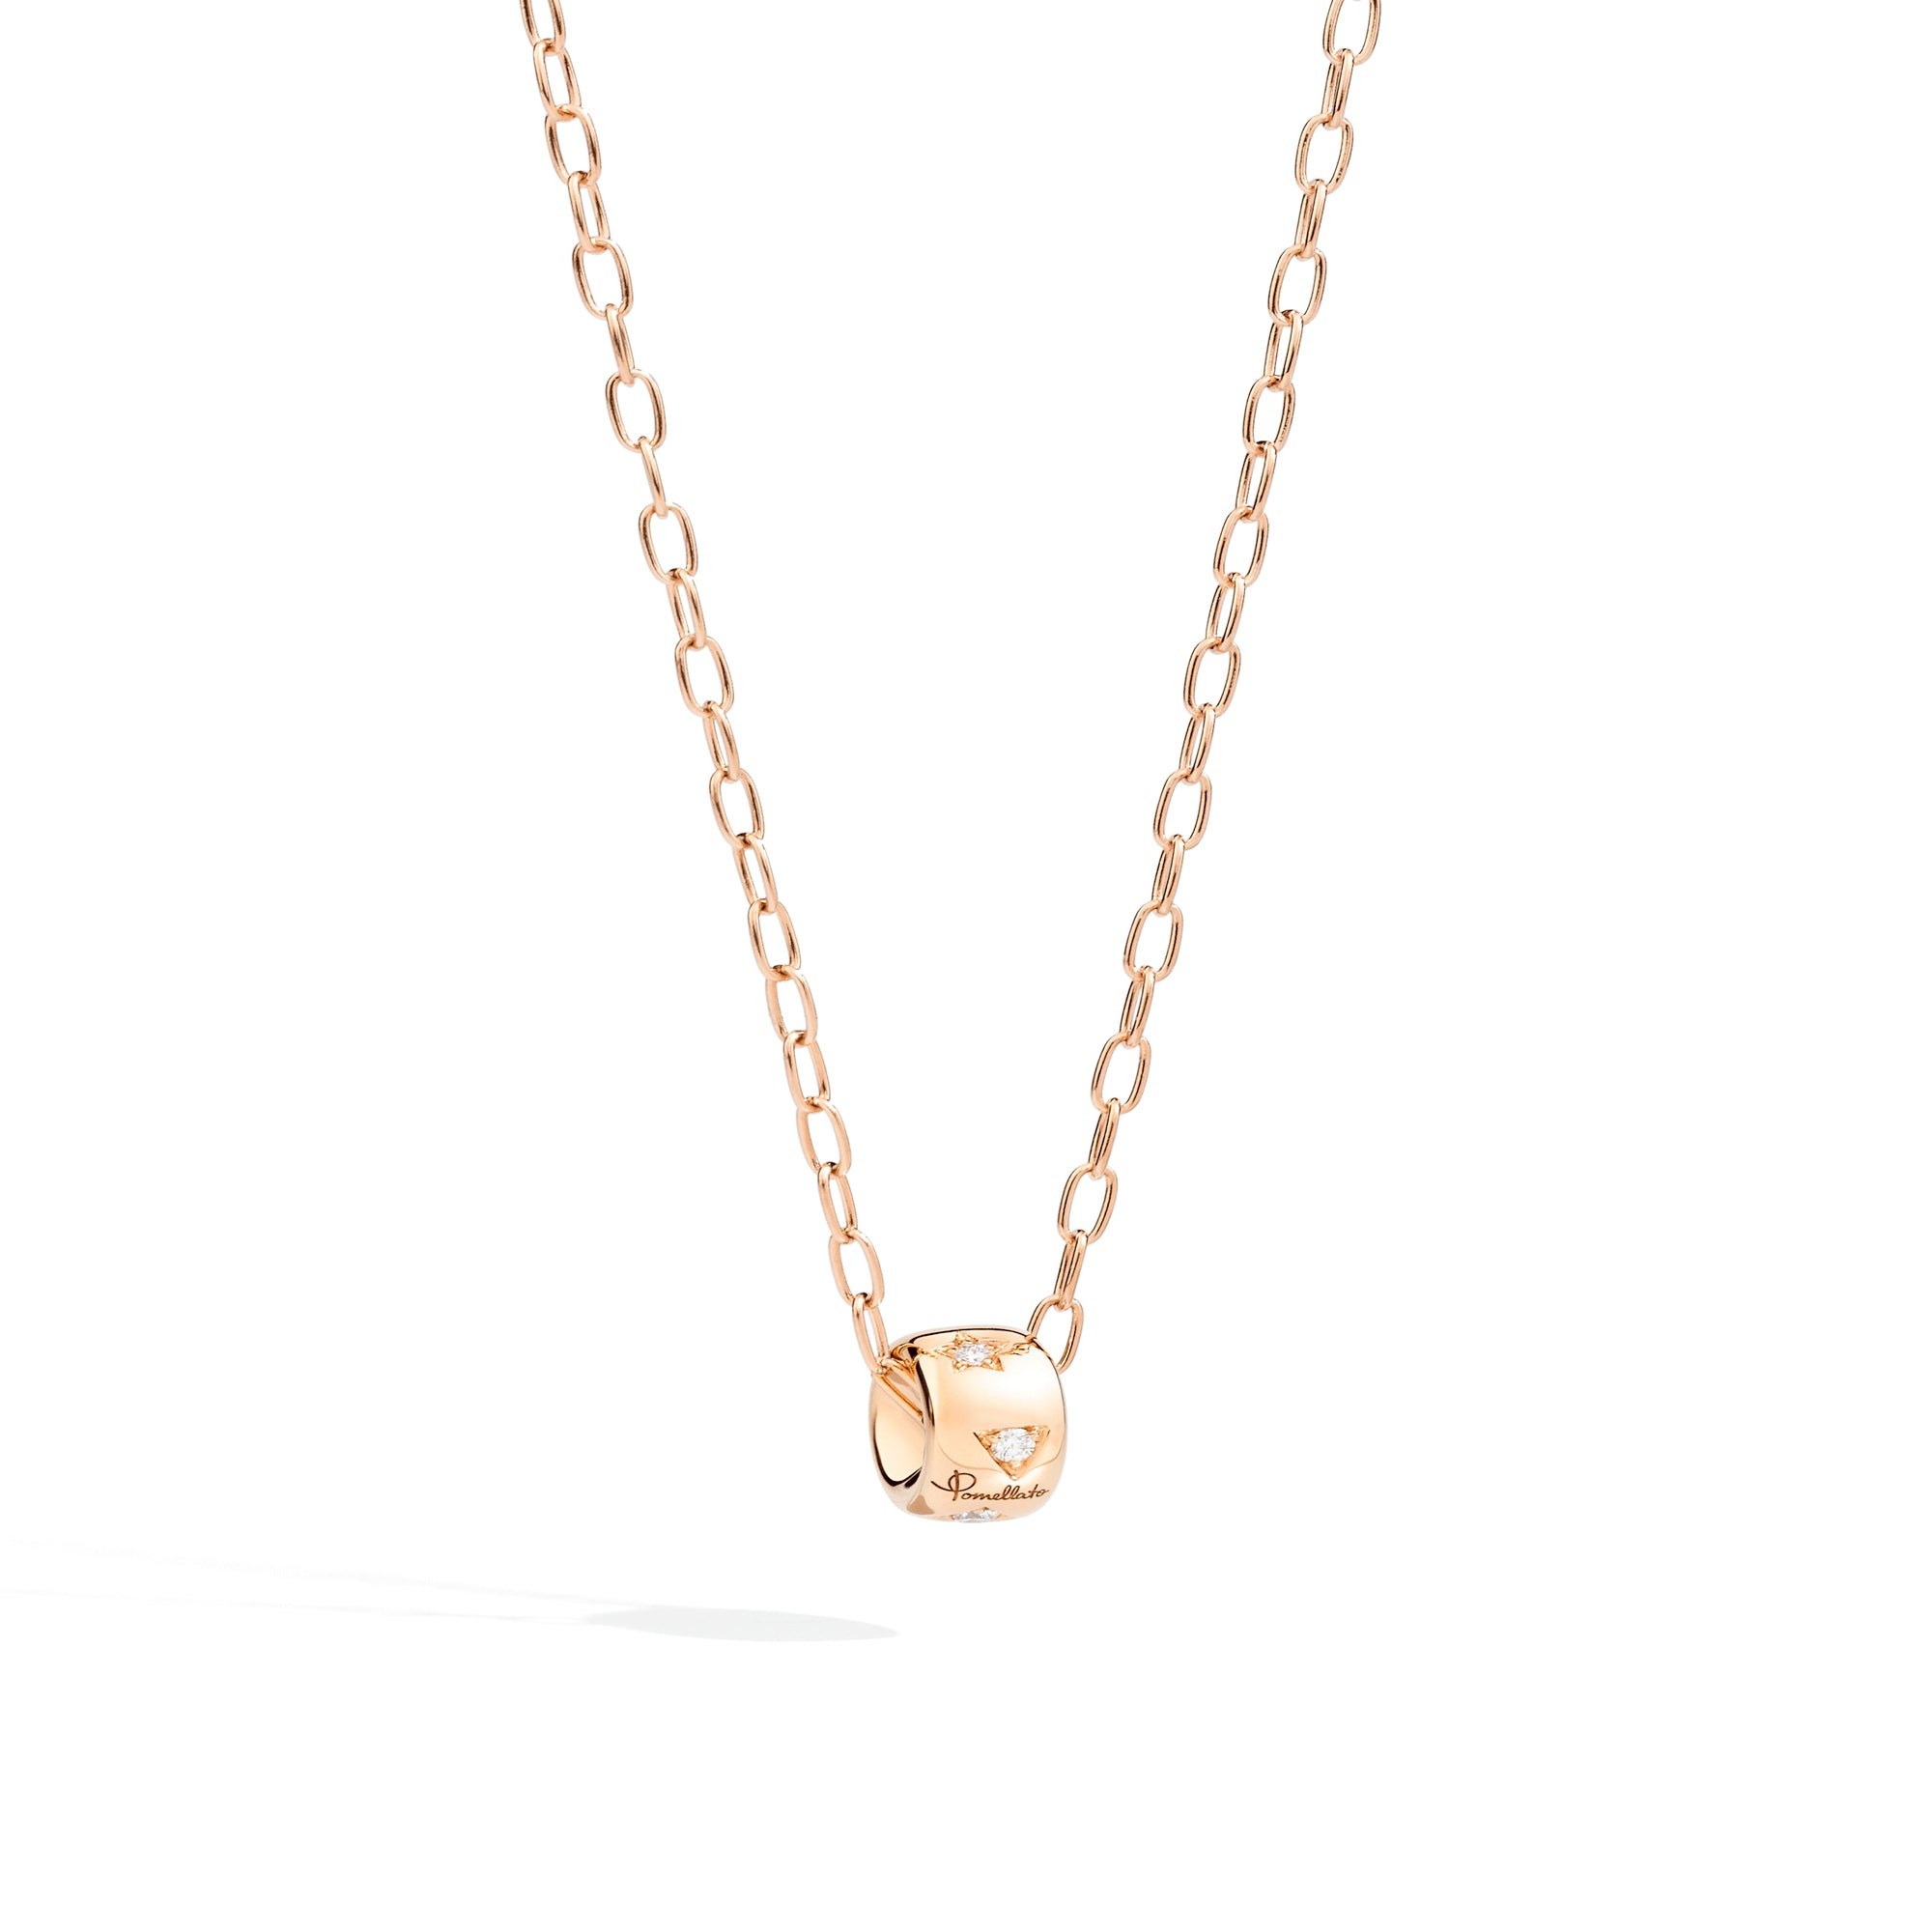 Iconica Necklace with Chain in 18k Rose Gold with Diamonds - Orsini Jewellers NZ